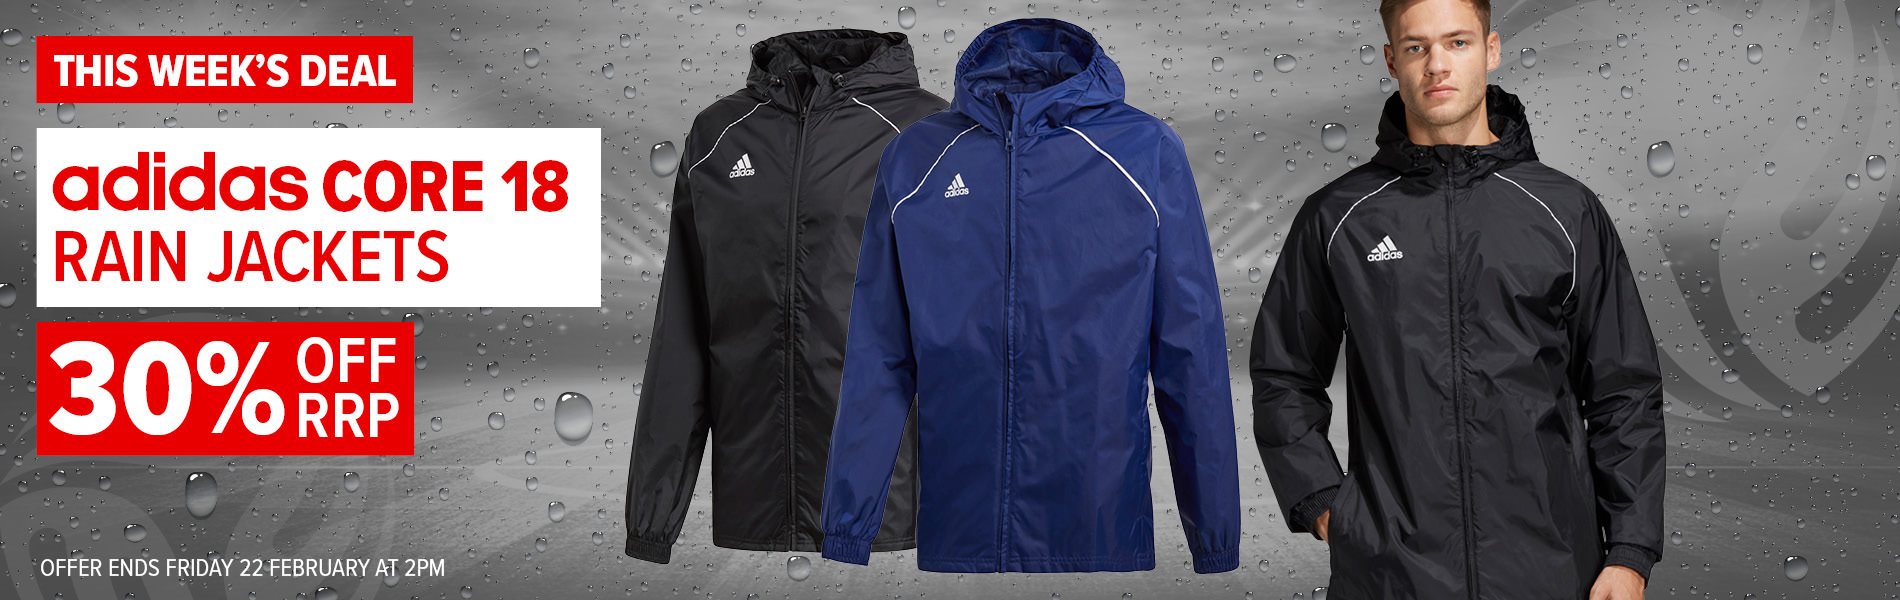 Weekly Deal - Core 18 Rain Jacket